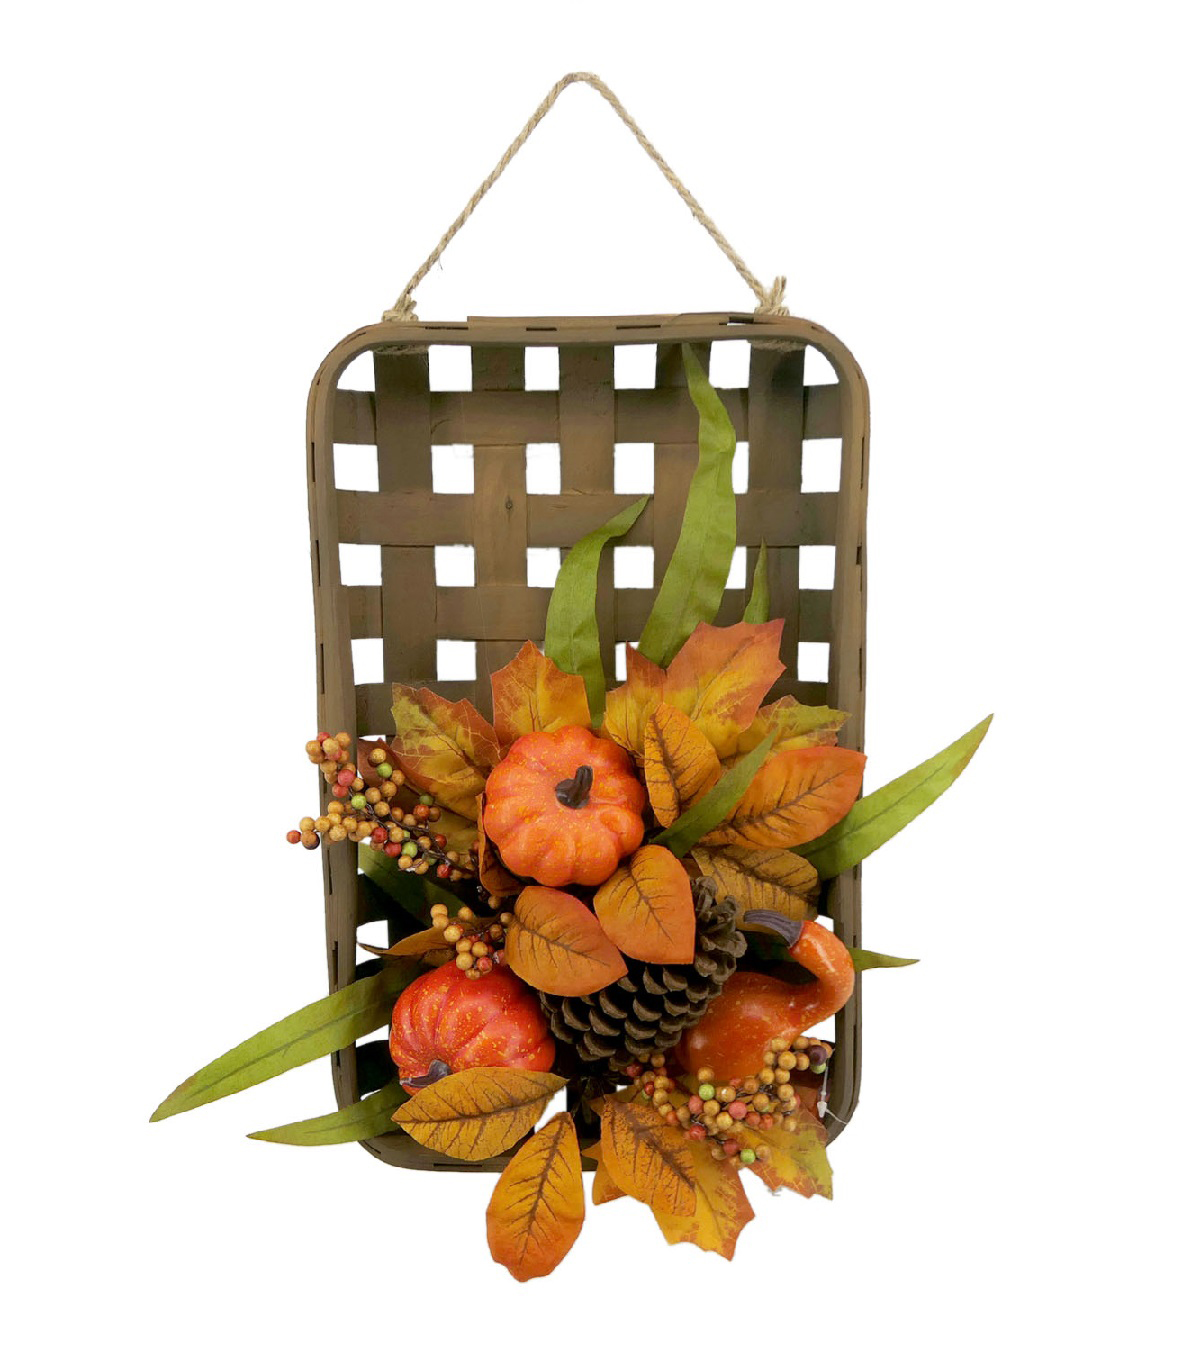 Blooming Autumn Basket Wall Decor with Pumpkins & Berries-Orange